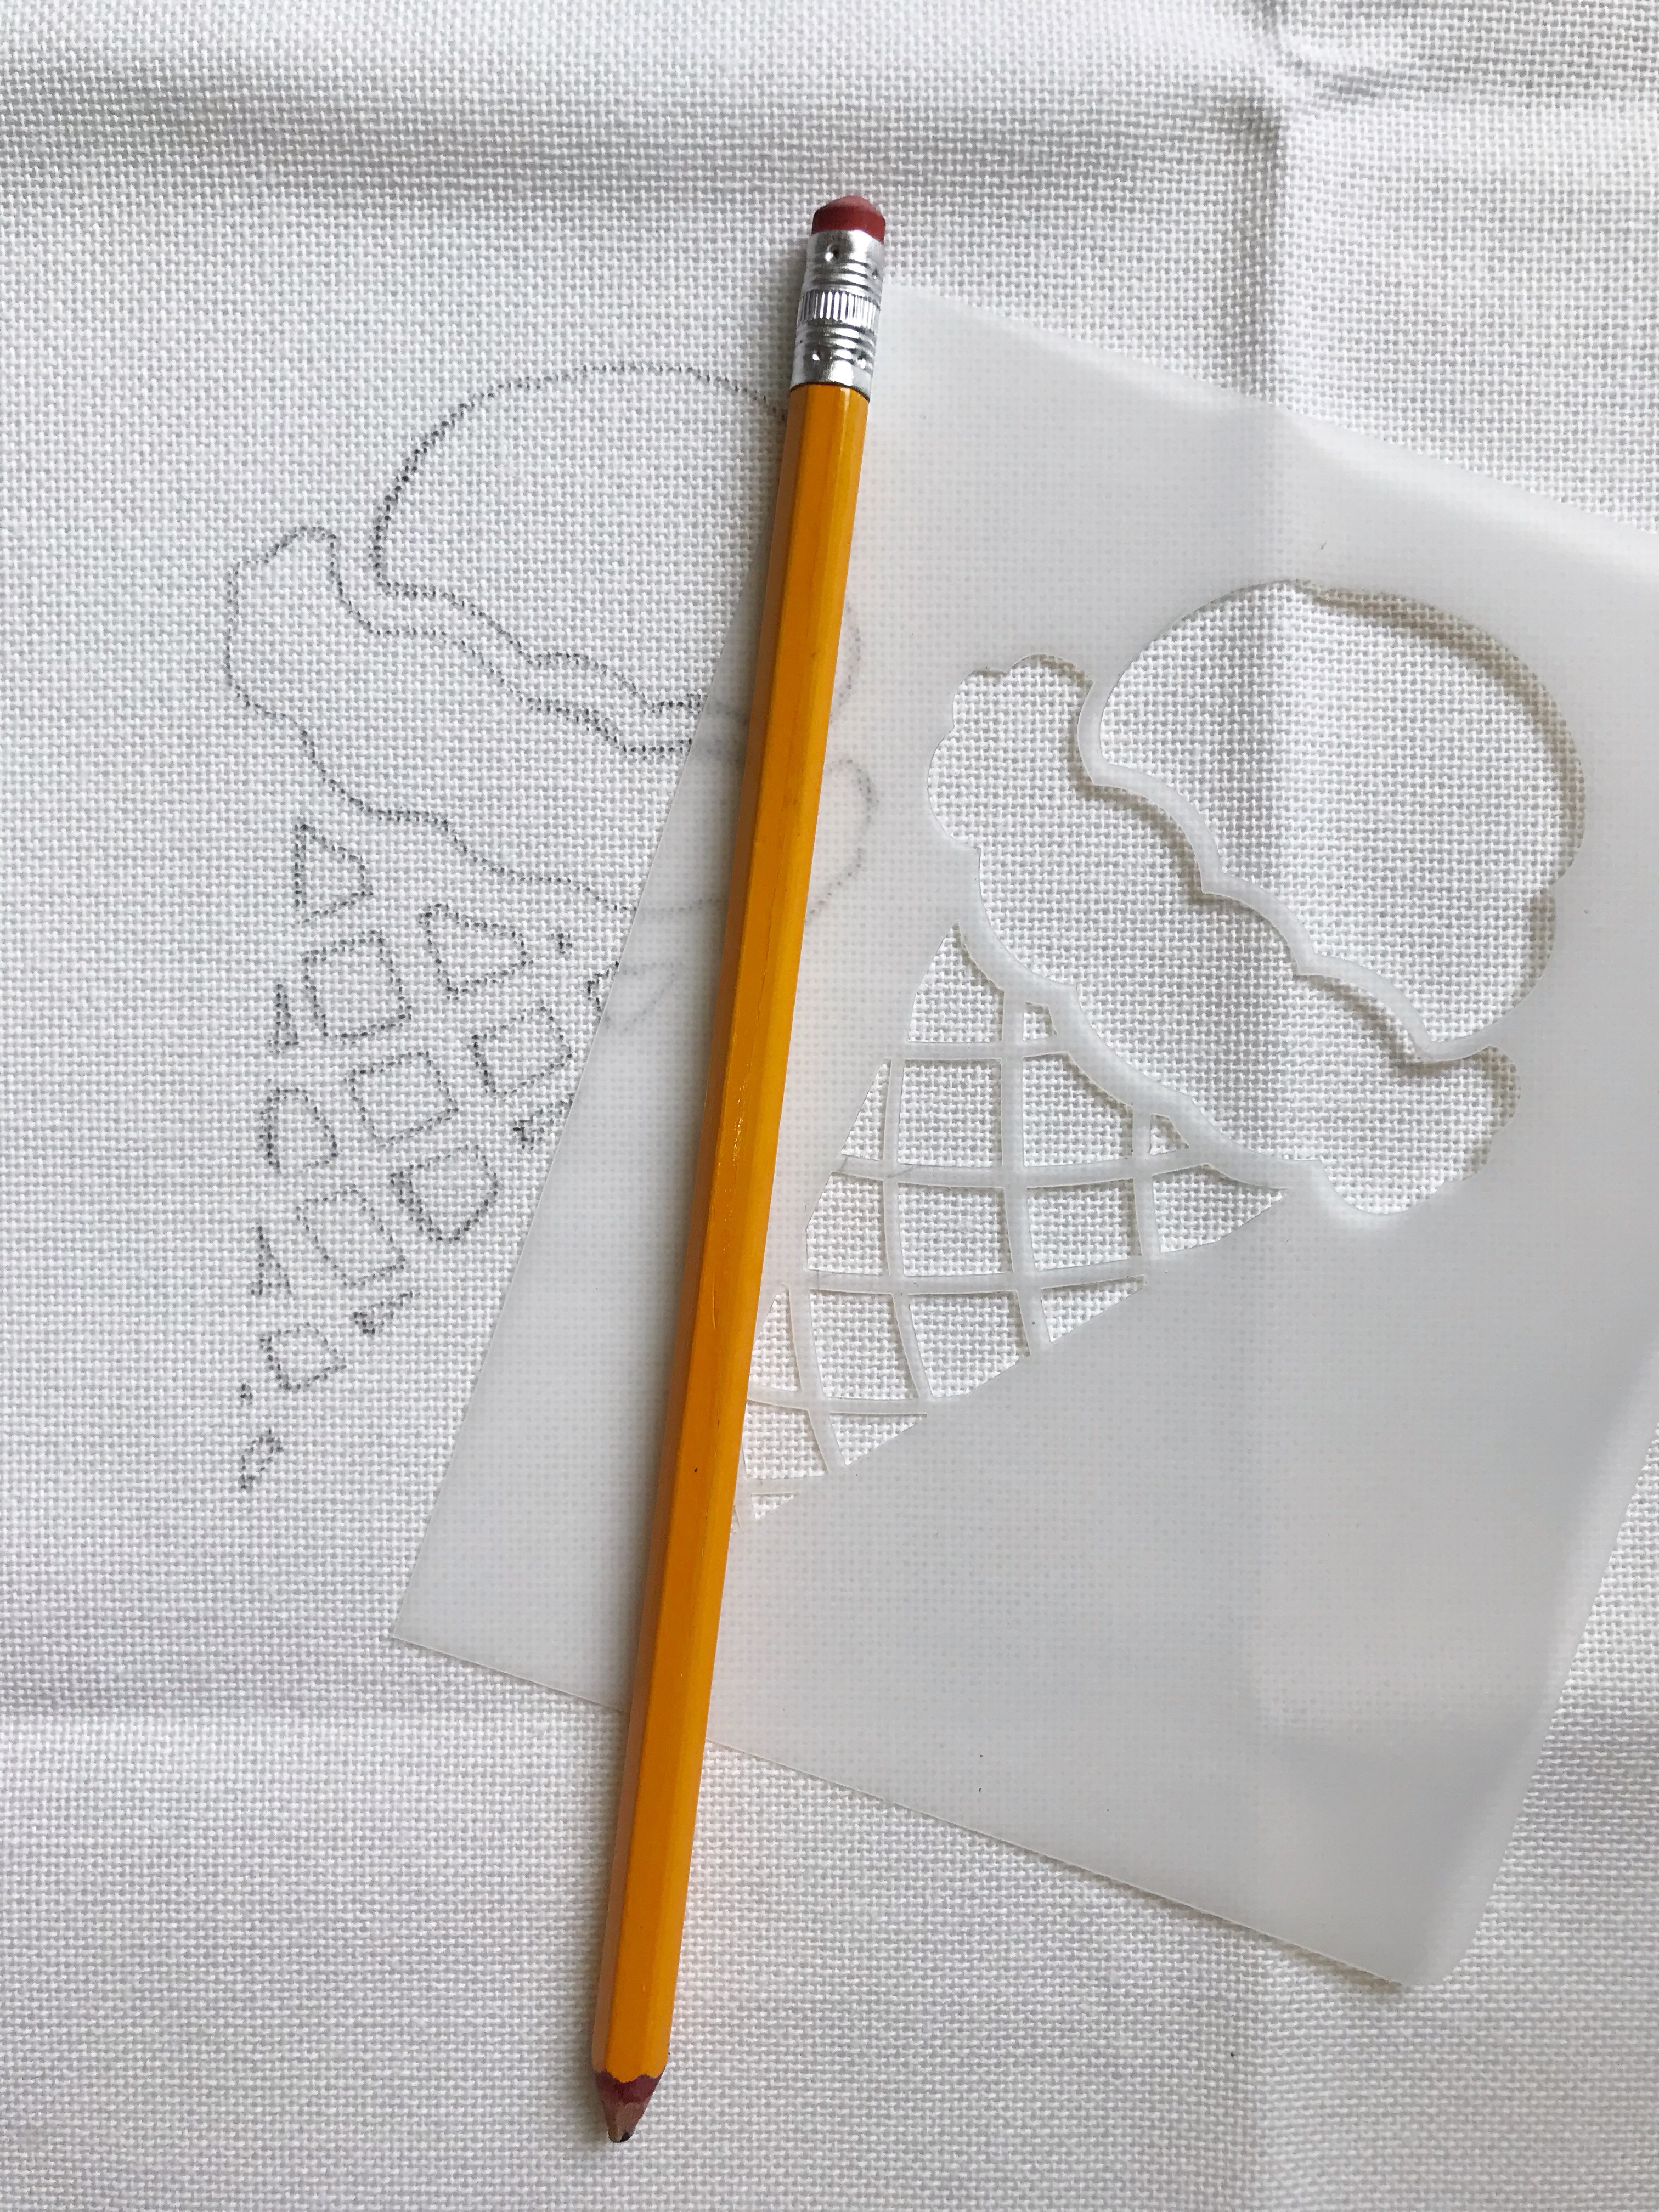 Draw your ice cream stencil onto the cloth